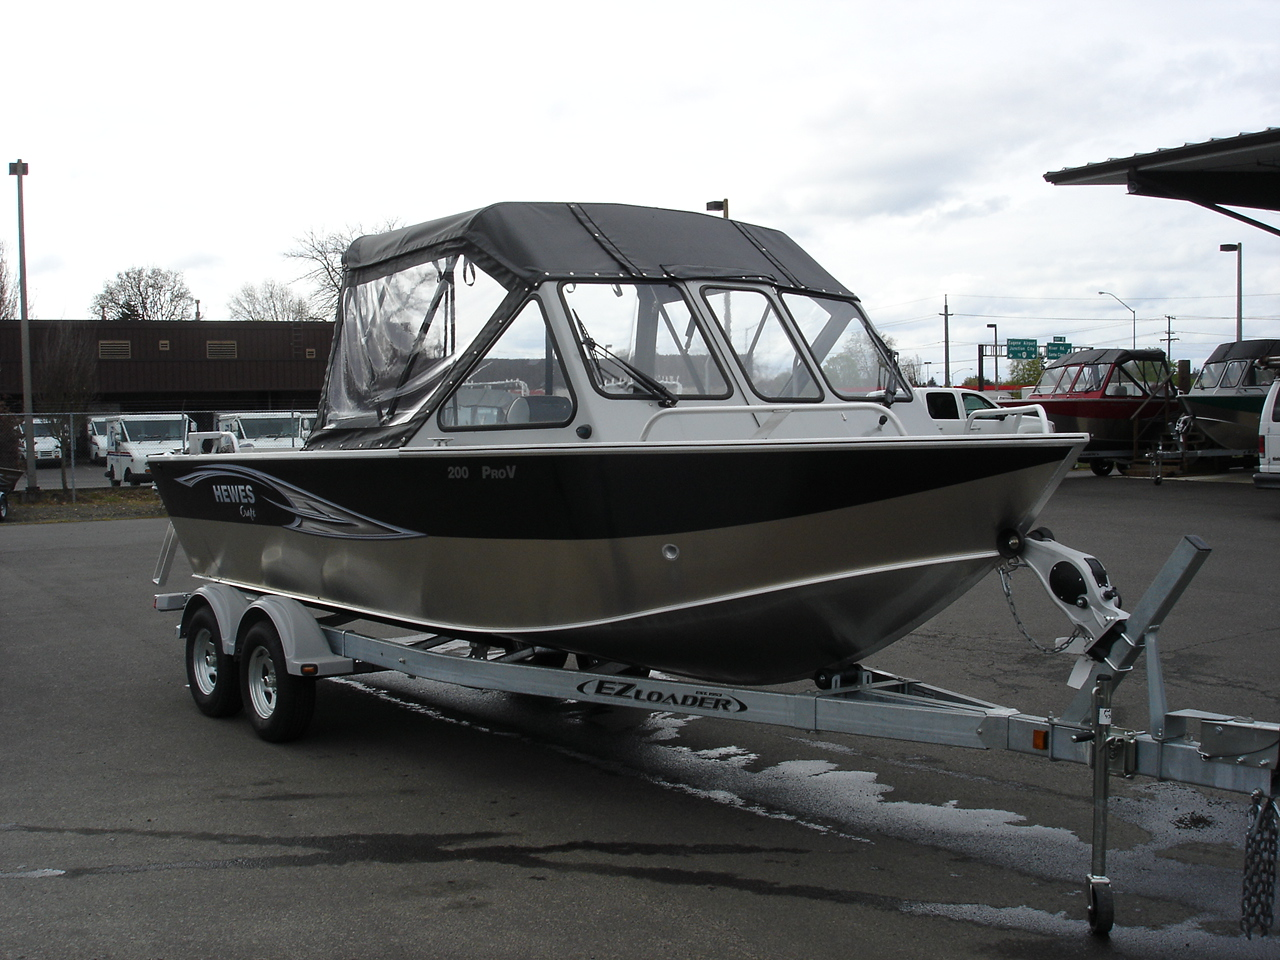 Used Hewescraft Boats >> Hewes Boats Images - Frompo